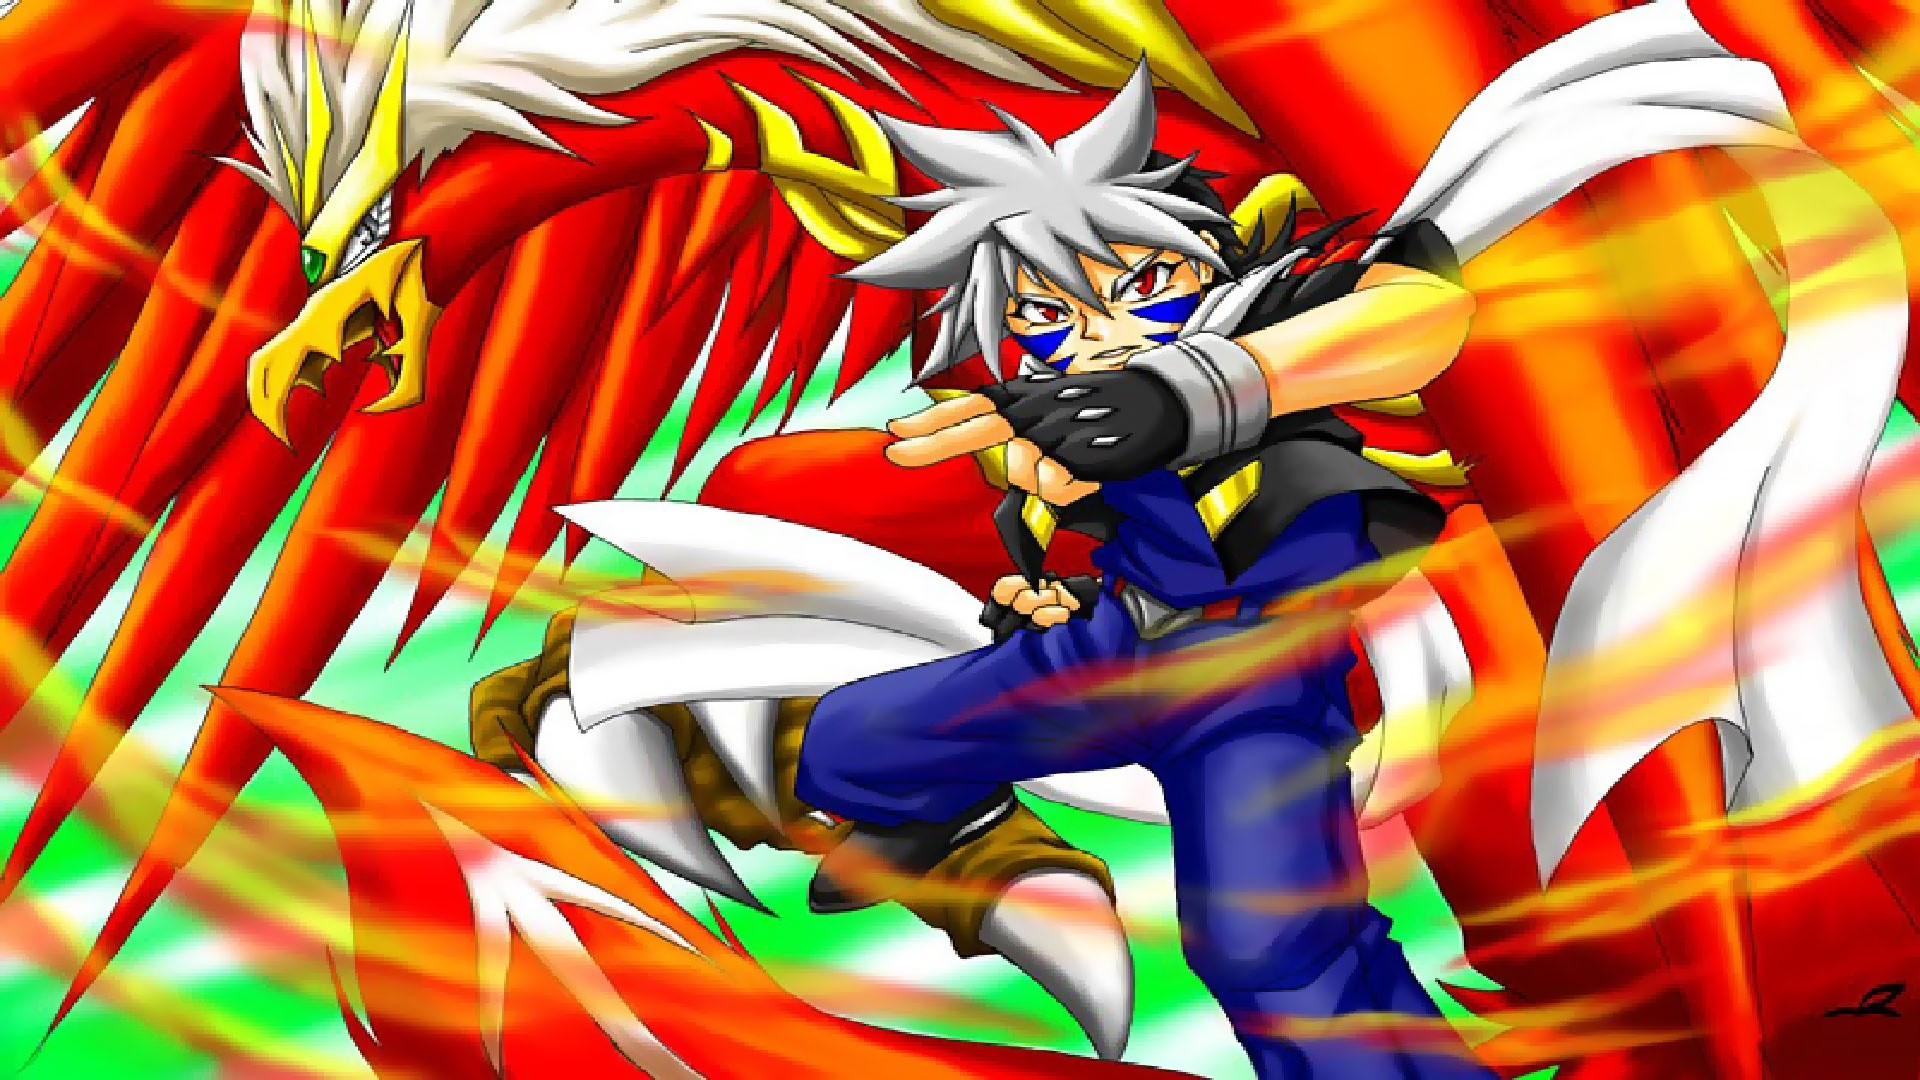 Beyblade hd wallpaper 70 images 1920x1080 beyblade hd wallpapers voltagebd Images